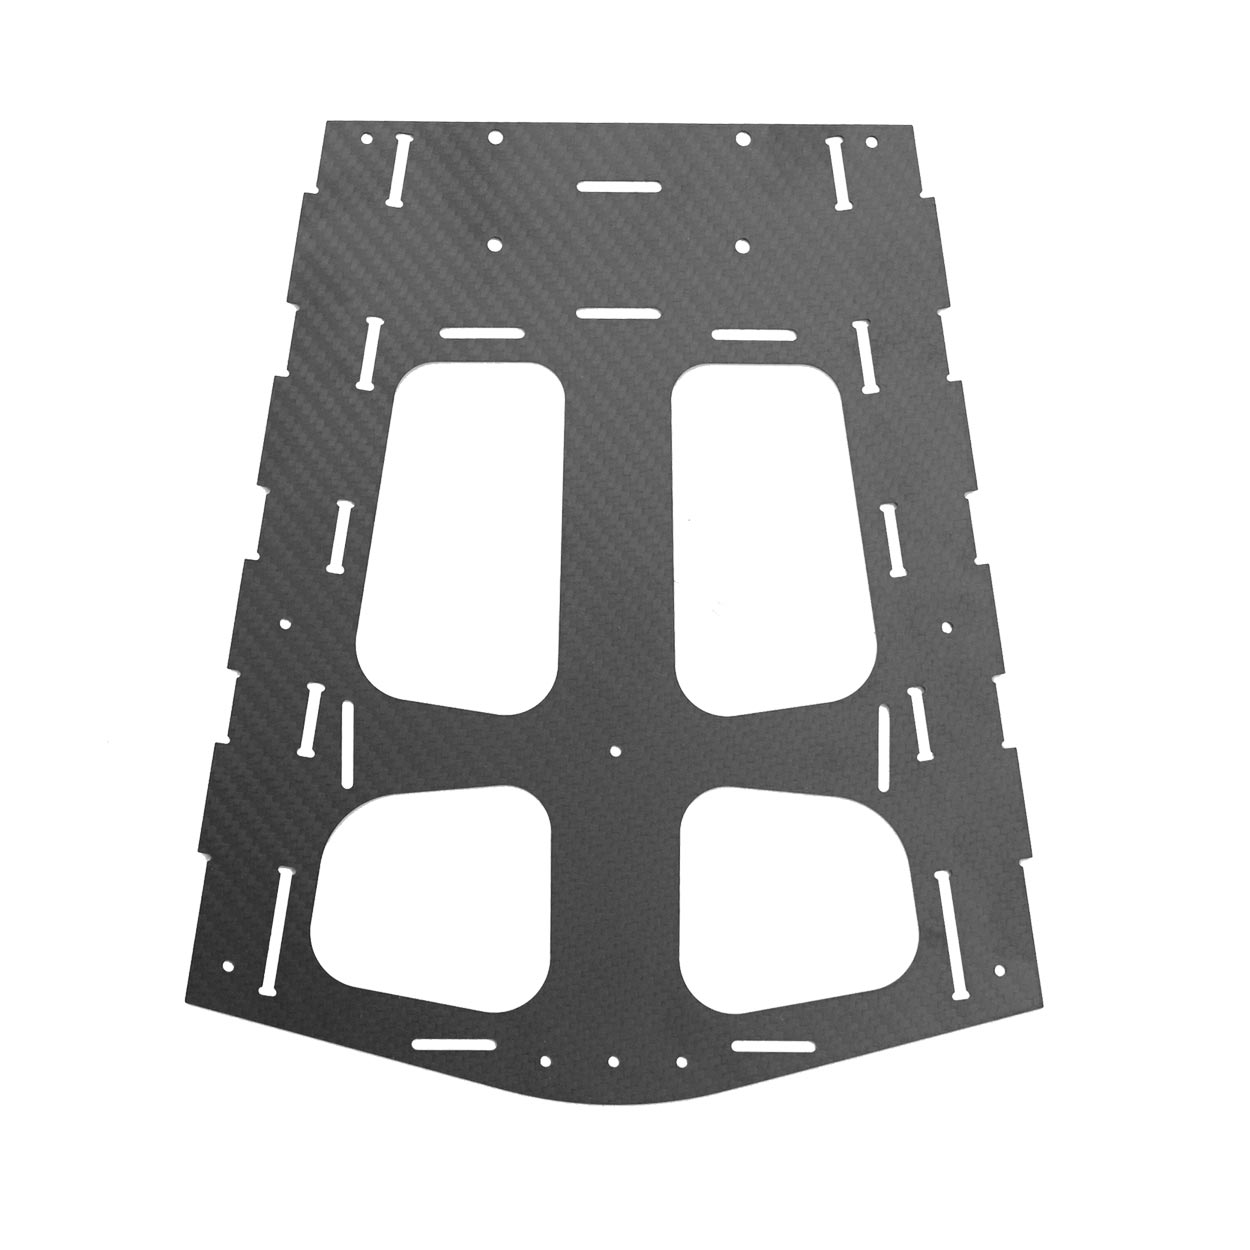 Replacement lower leg plate for the OpenPPG 22 v3.1 electric paramotor parts